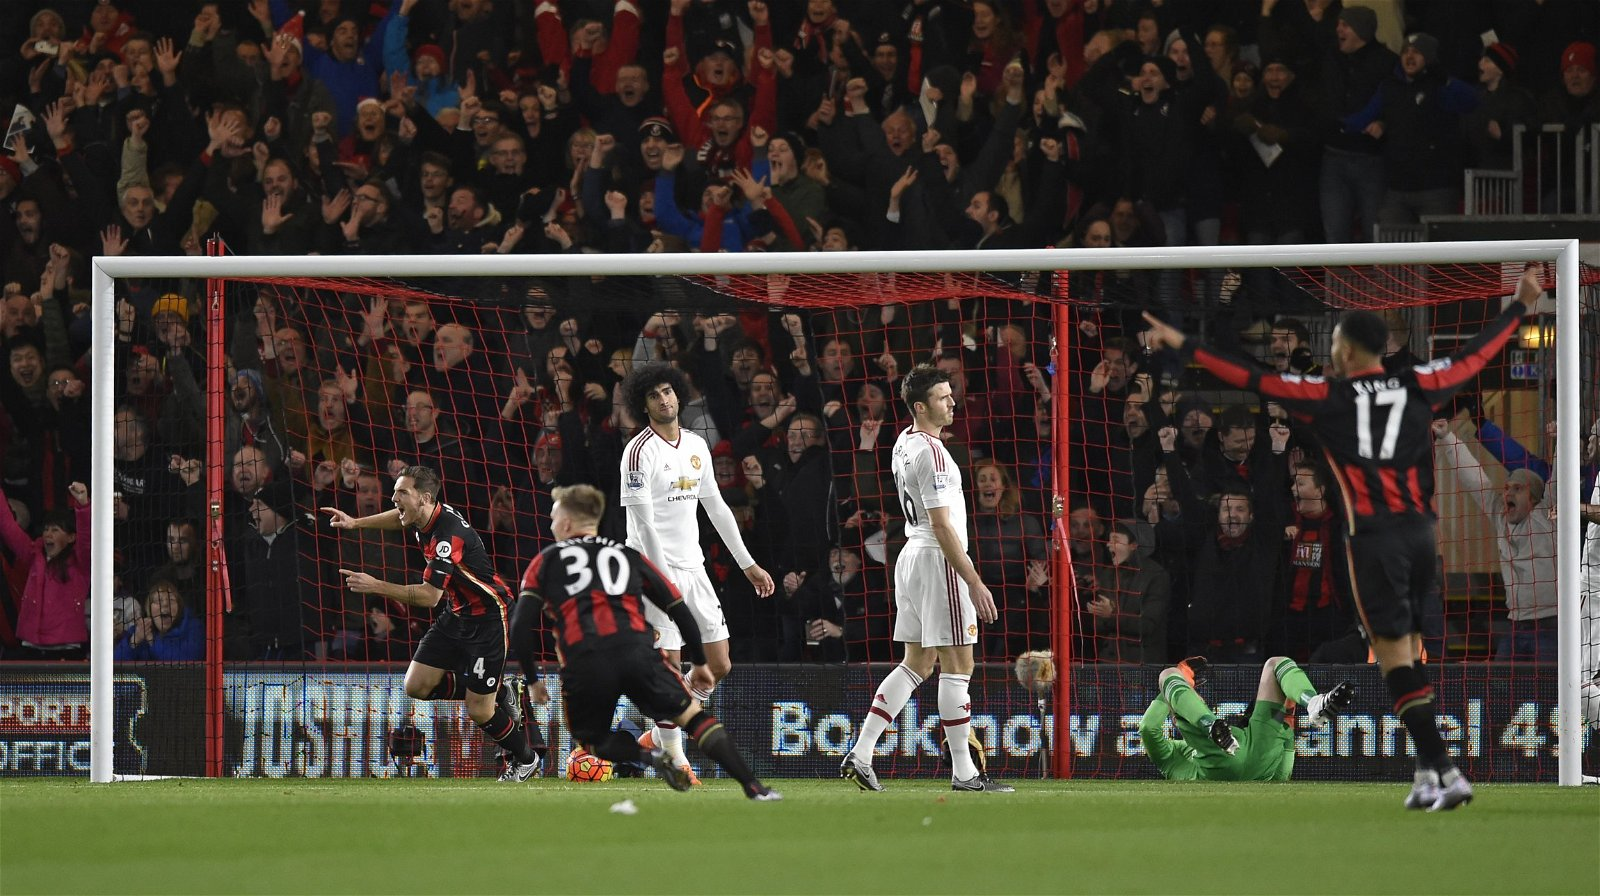 Dan Gosling (L) and Matt Ritchie celebrate after Junior Stanislas (not pictured) scores the first goal for Bournemouth direct from a corner kick v Man U 2015